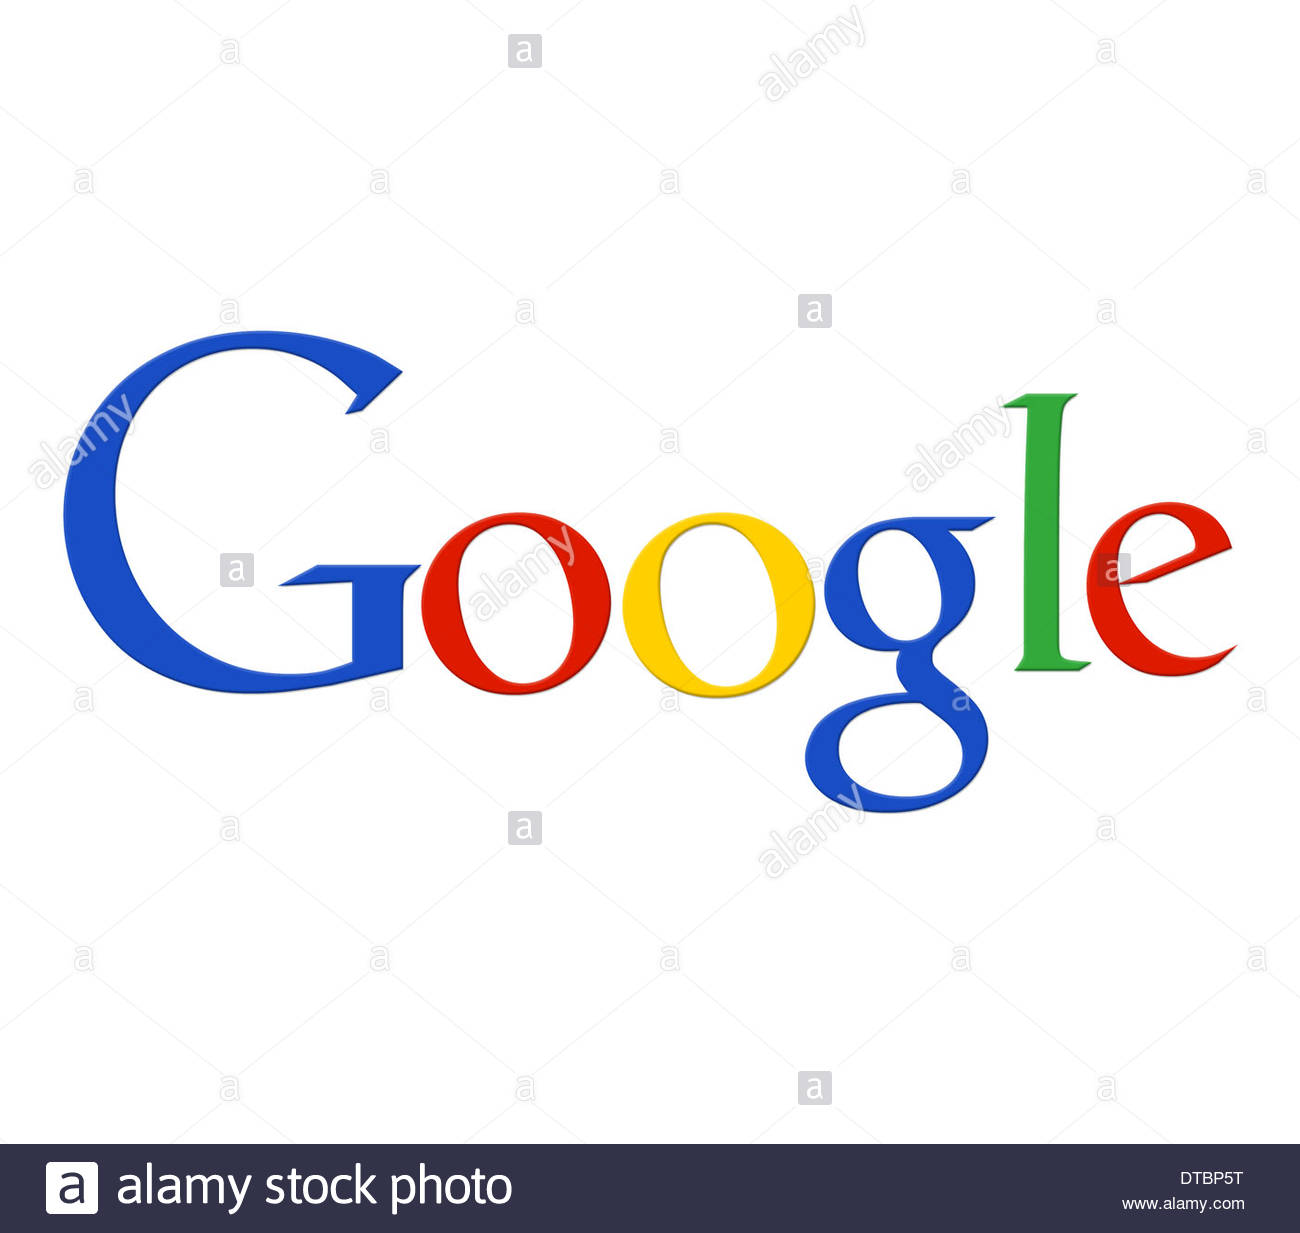 Google Flag Stock Photos & Google Flag Stock Images - Page 3